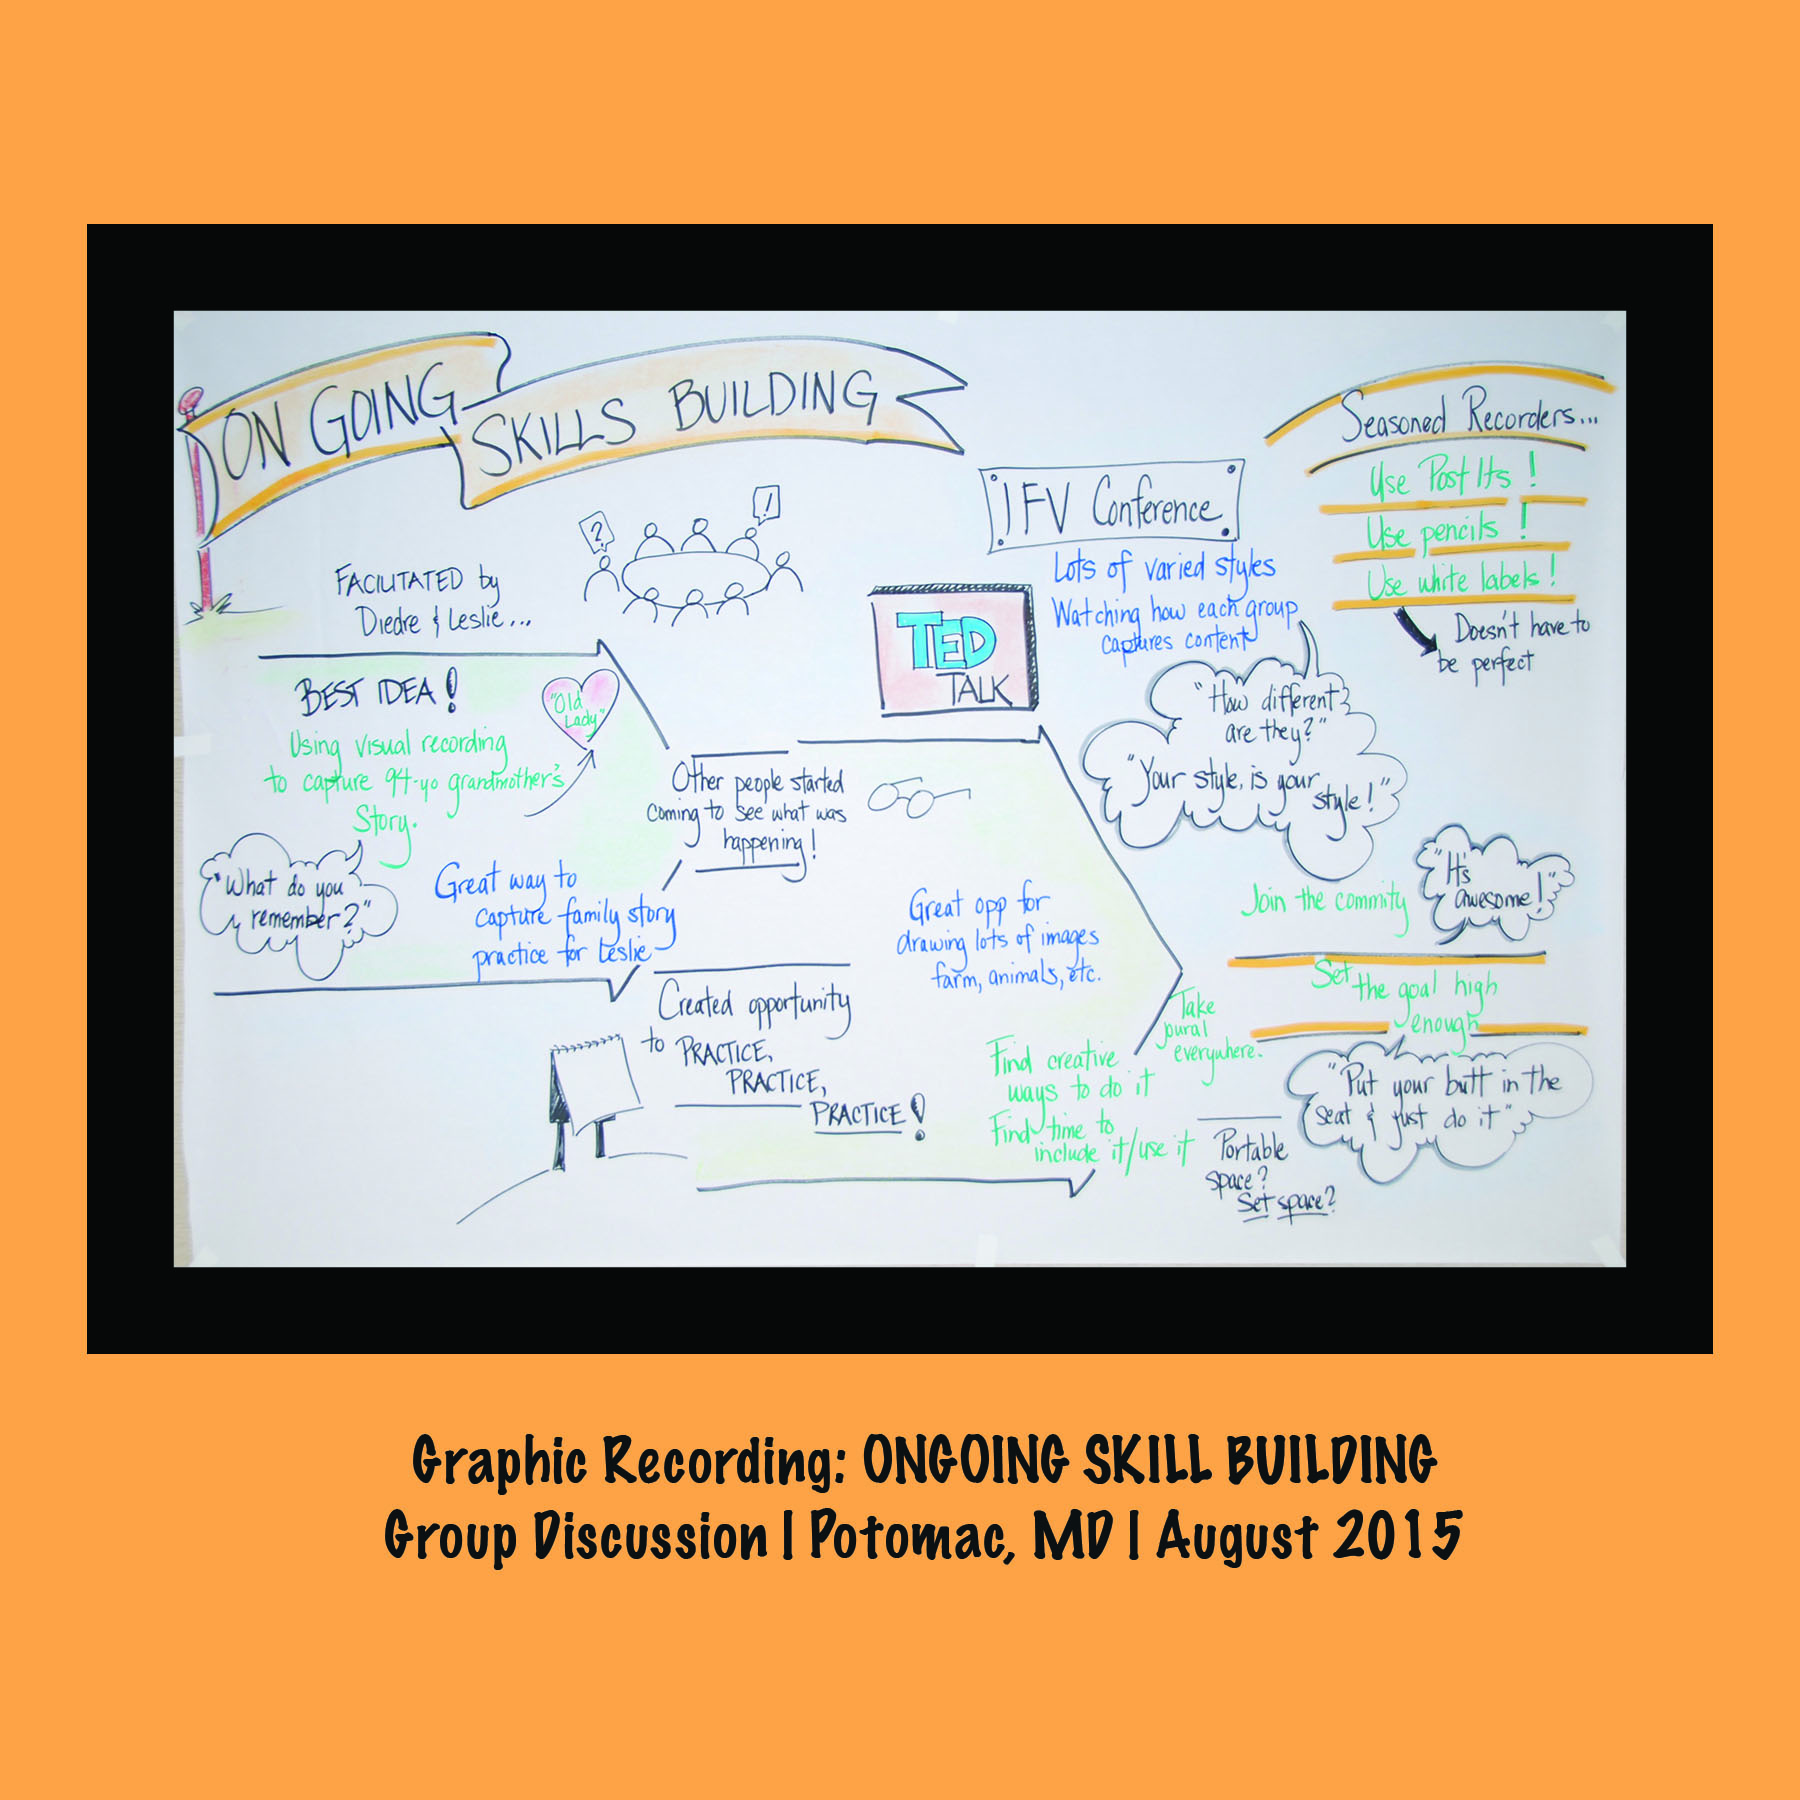 Graphic Recording 4' X5' | Open Discussion. August 2015